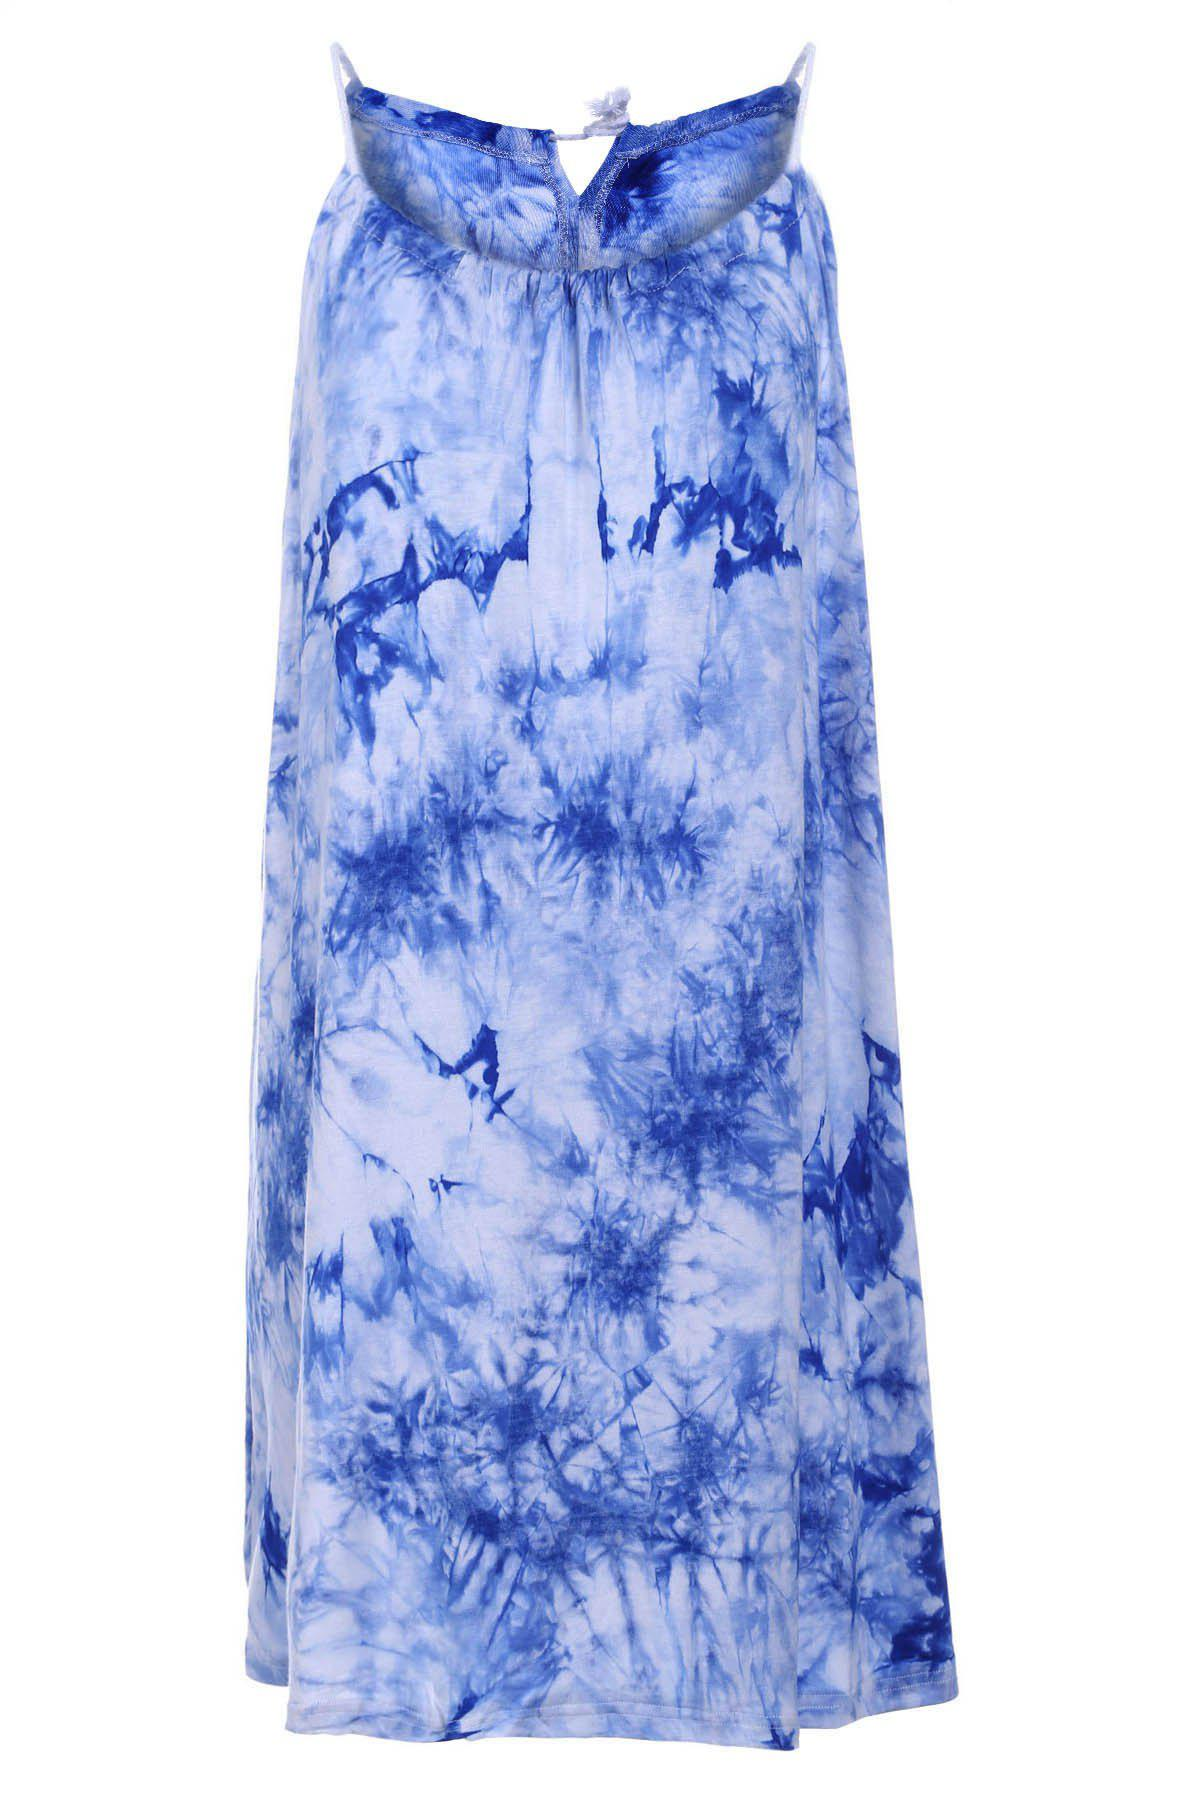 Chic Sleeveless Spaghetti Strap Tie Dye Women's Dress - BLUE XL